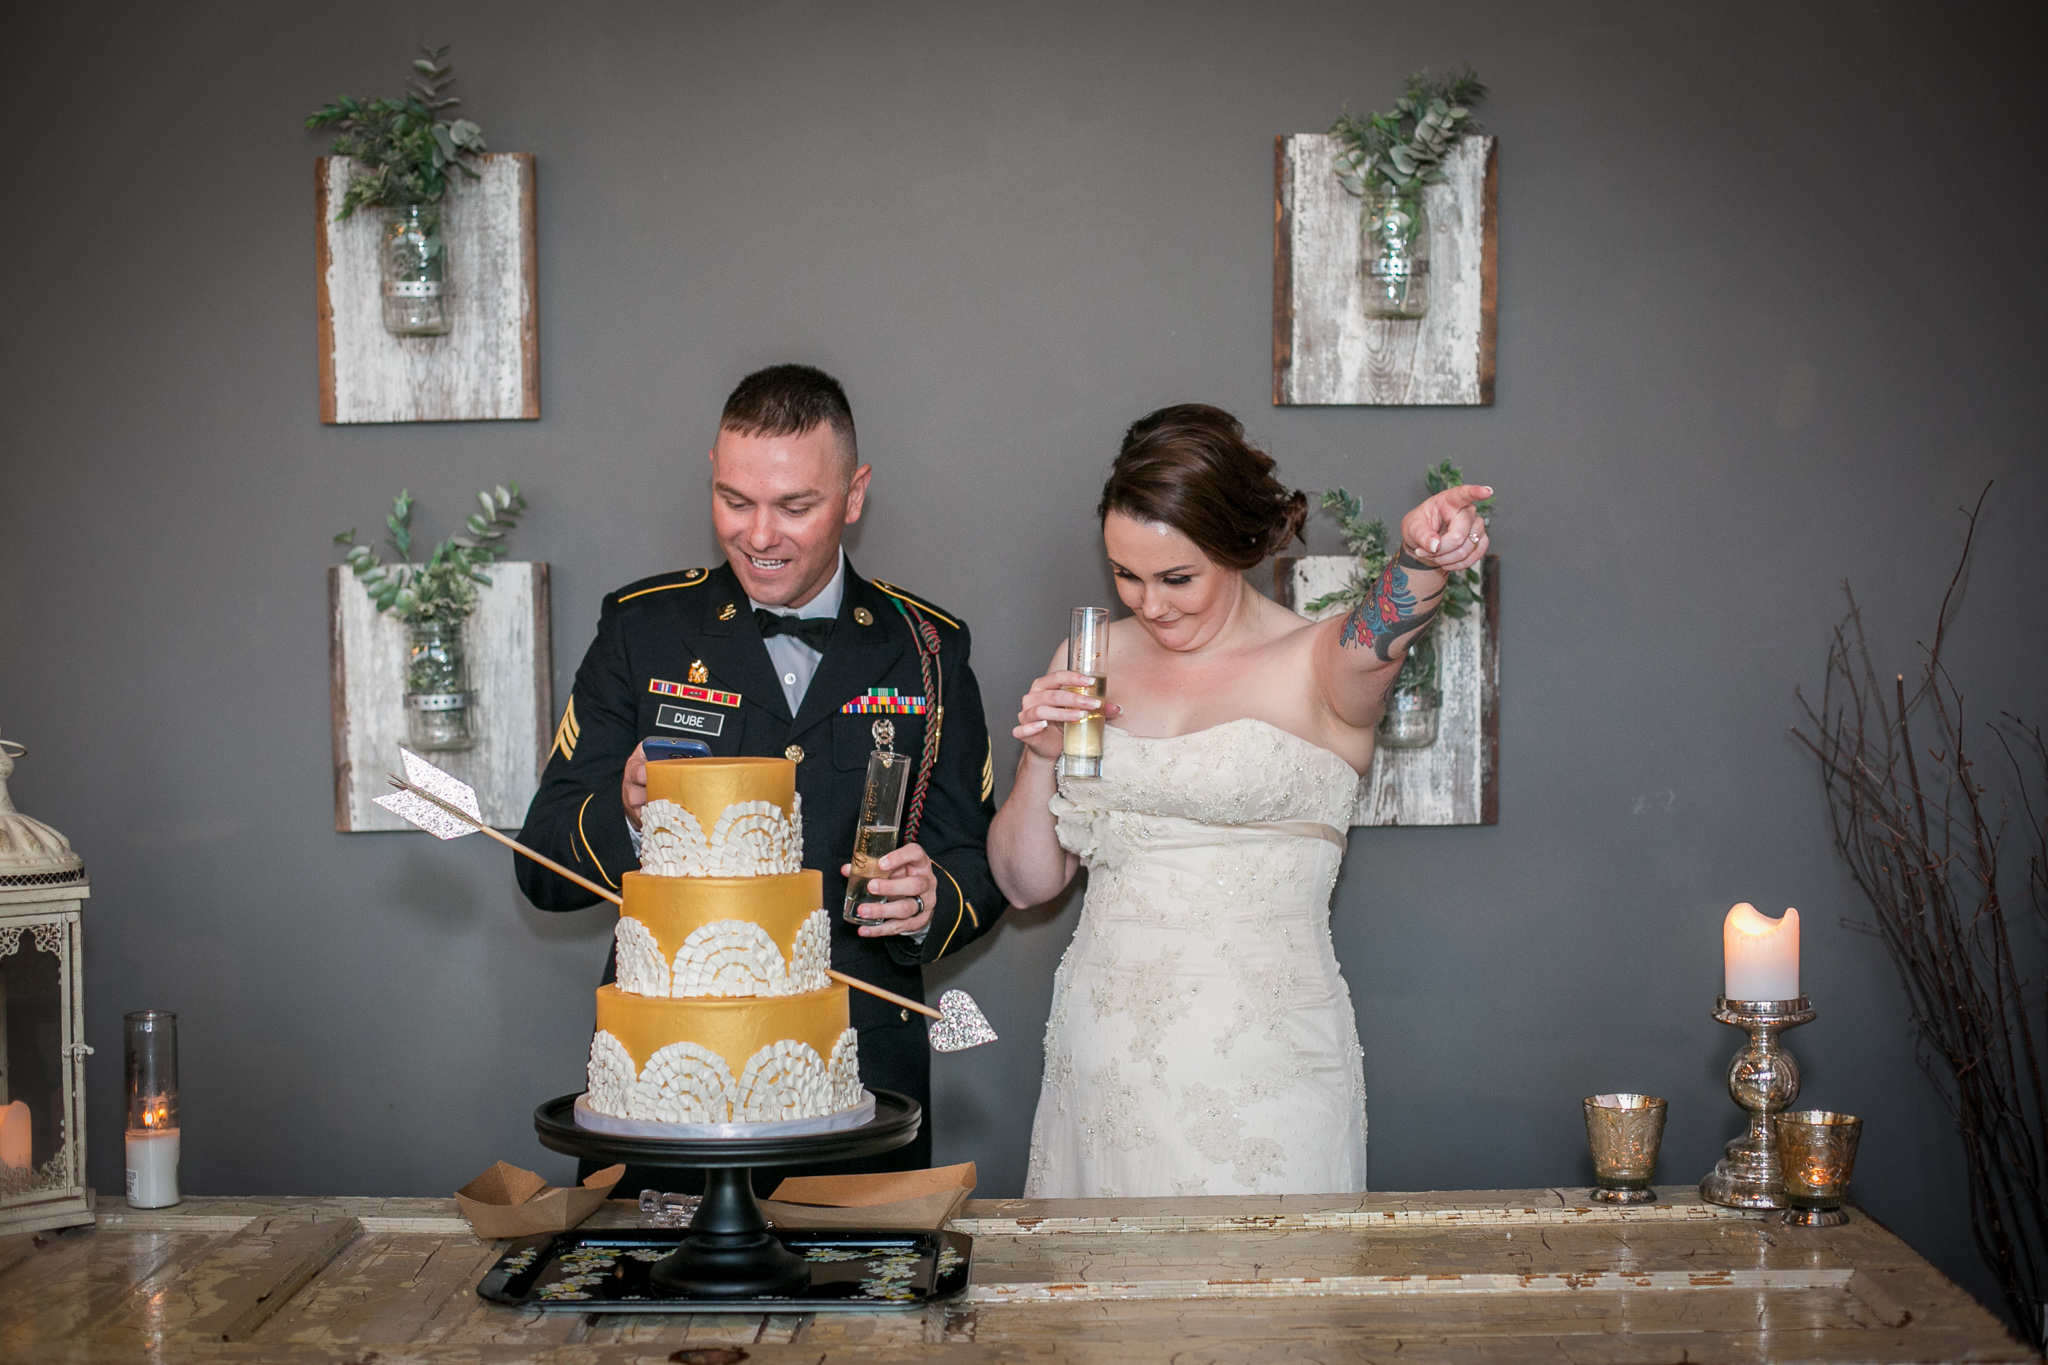 Wedding_Day_Moments_To_Do_List_Andrew&Sydney_162.jpg